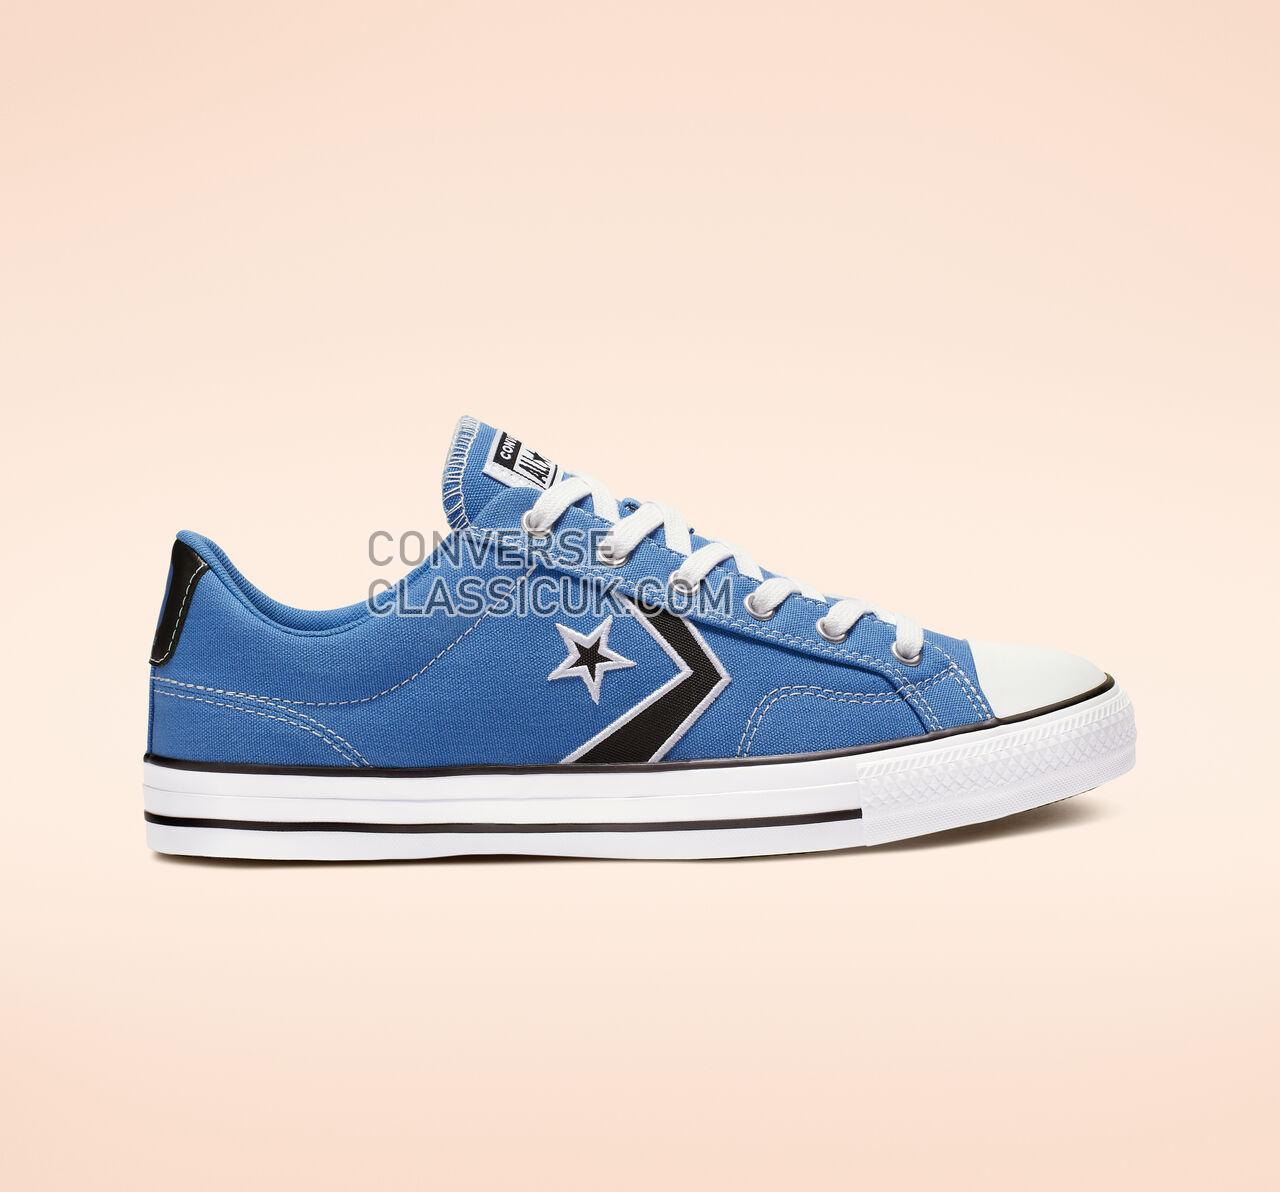 Converse Star Player Summer Sport Low Top Mens Womens Unisex 164401C Totally Blue/Black/White Shoes